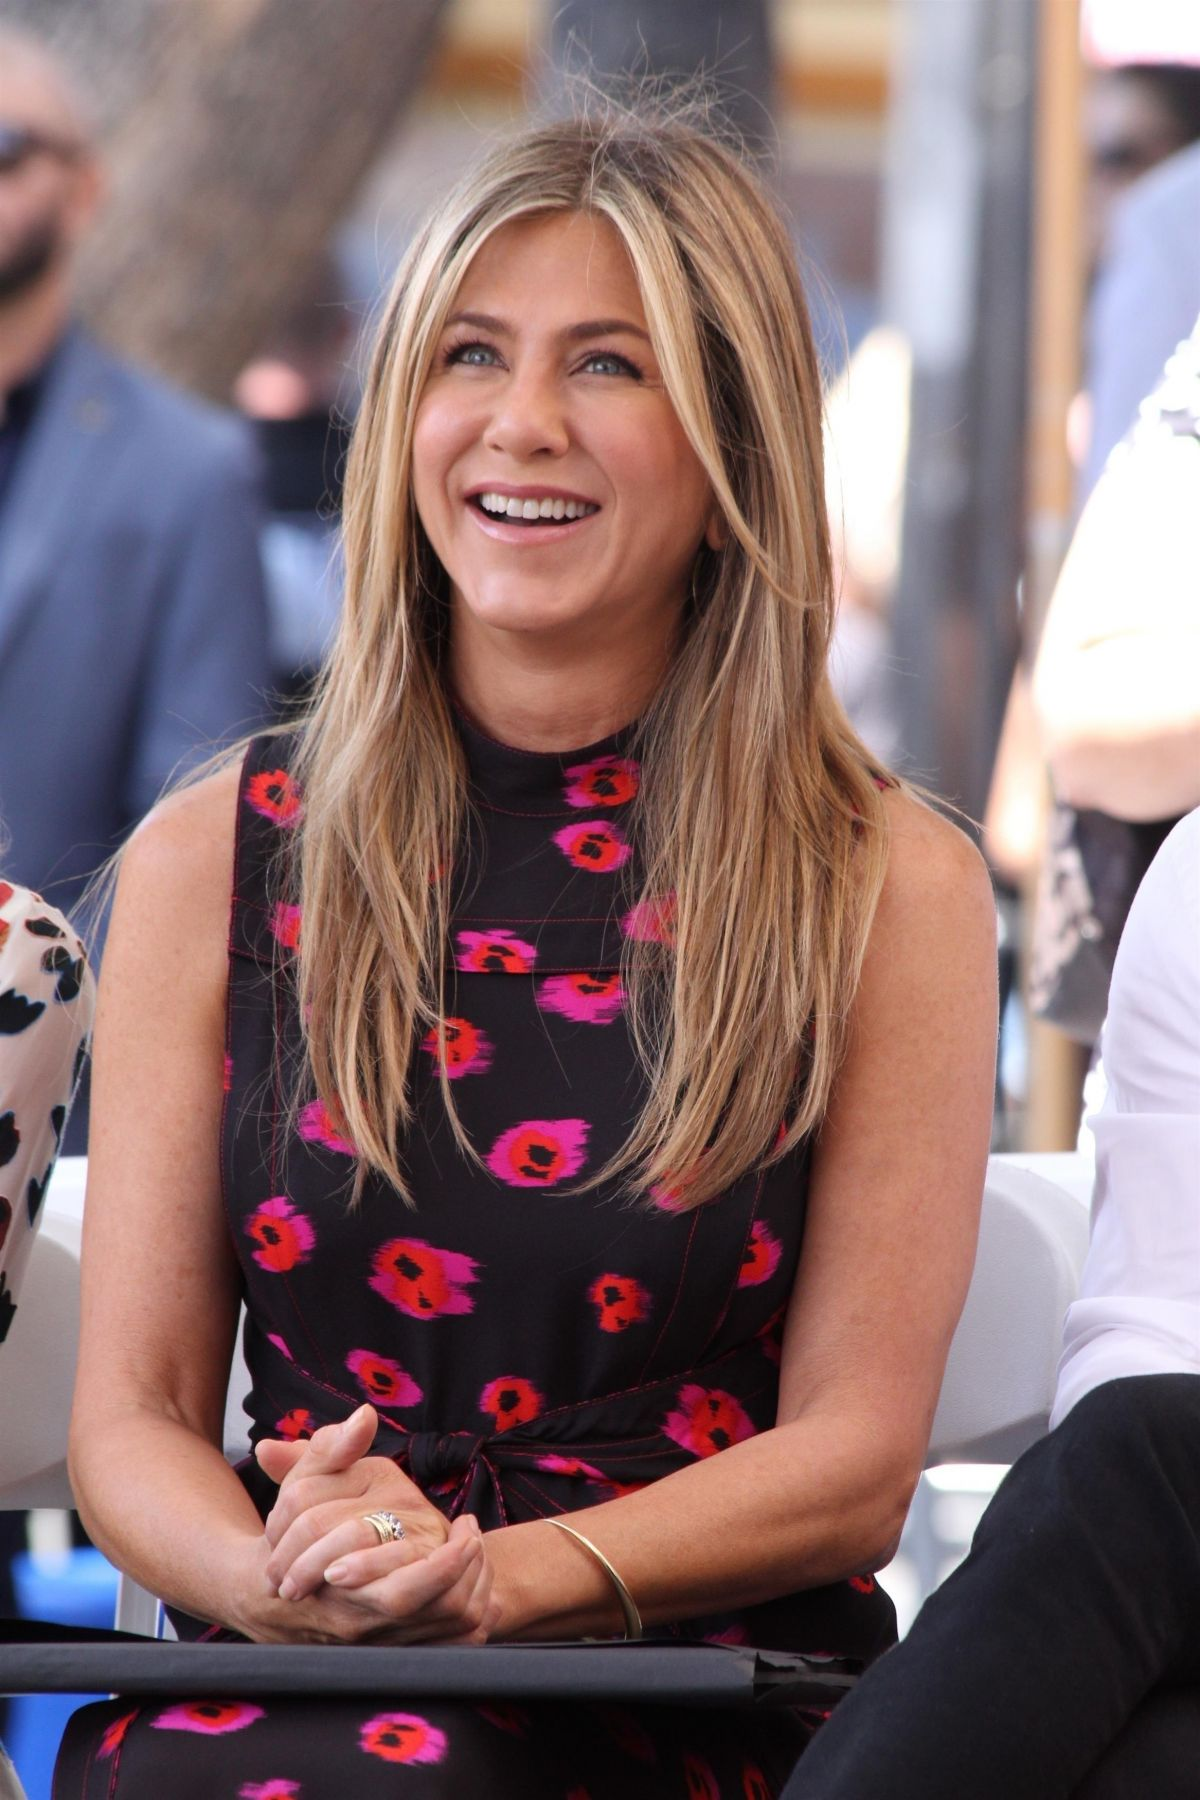 Jennifer Aniston At Jason Bateman's Hollywood Star Ceremony in Hollywood   jennifer-aniston-at-jason-bateman-s-hollywood-star-ceremony-in-hollywood_11